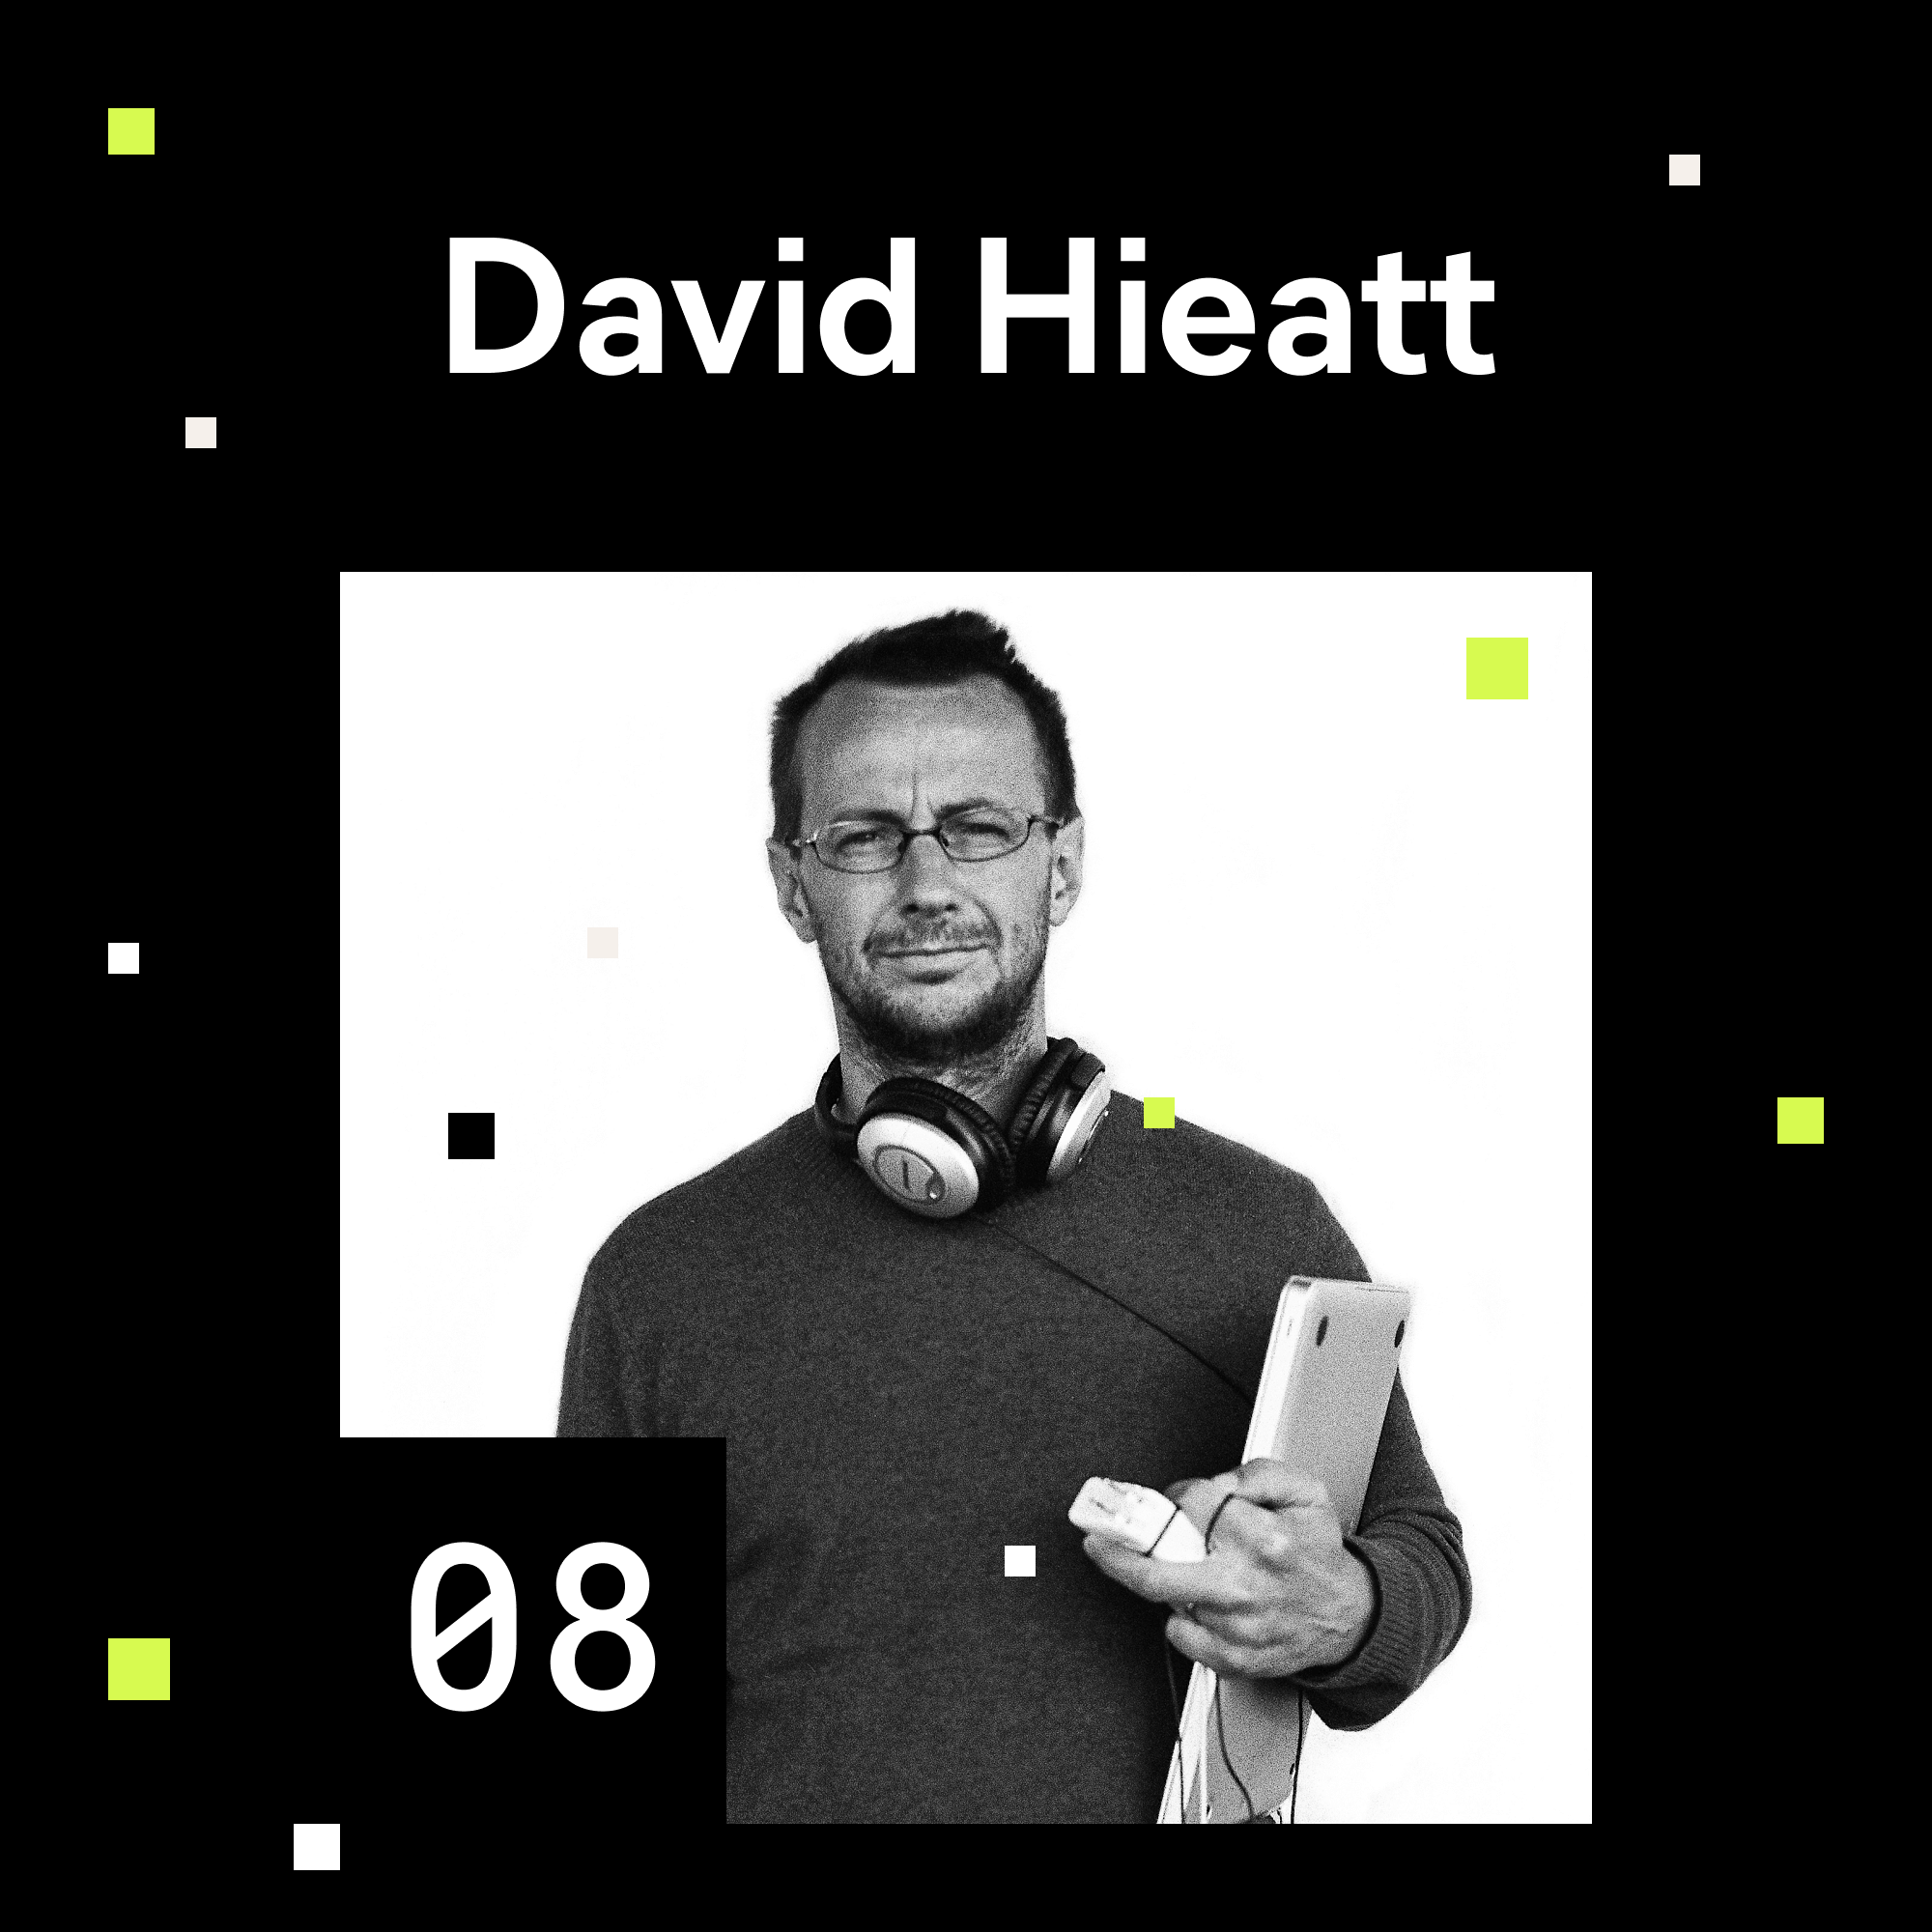 David Hieat portrait for episode 8 of the shaping chaos podcast.